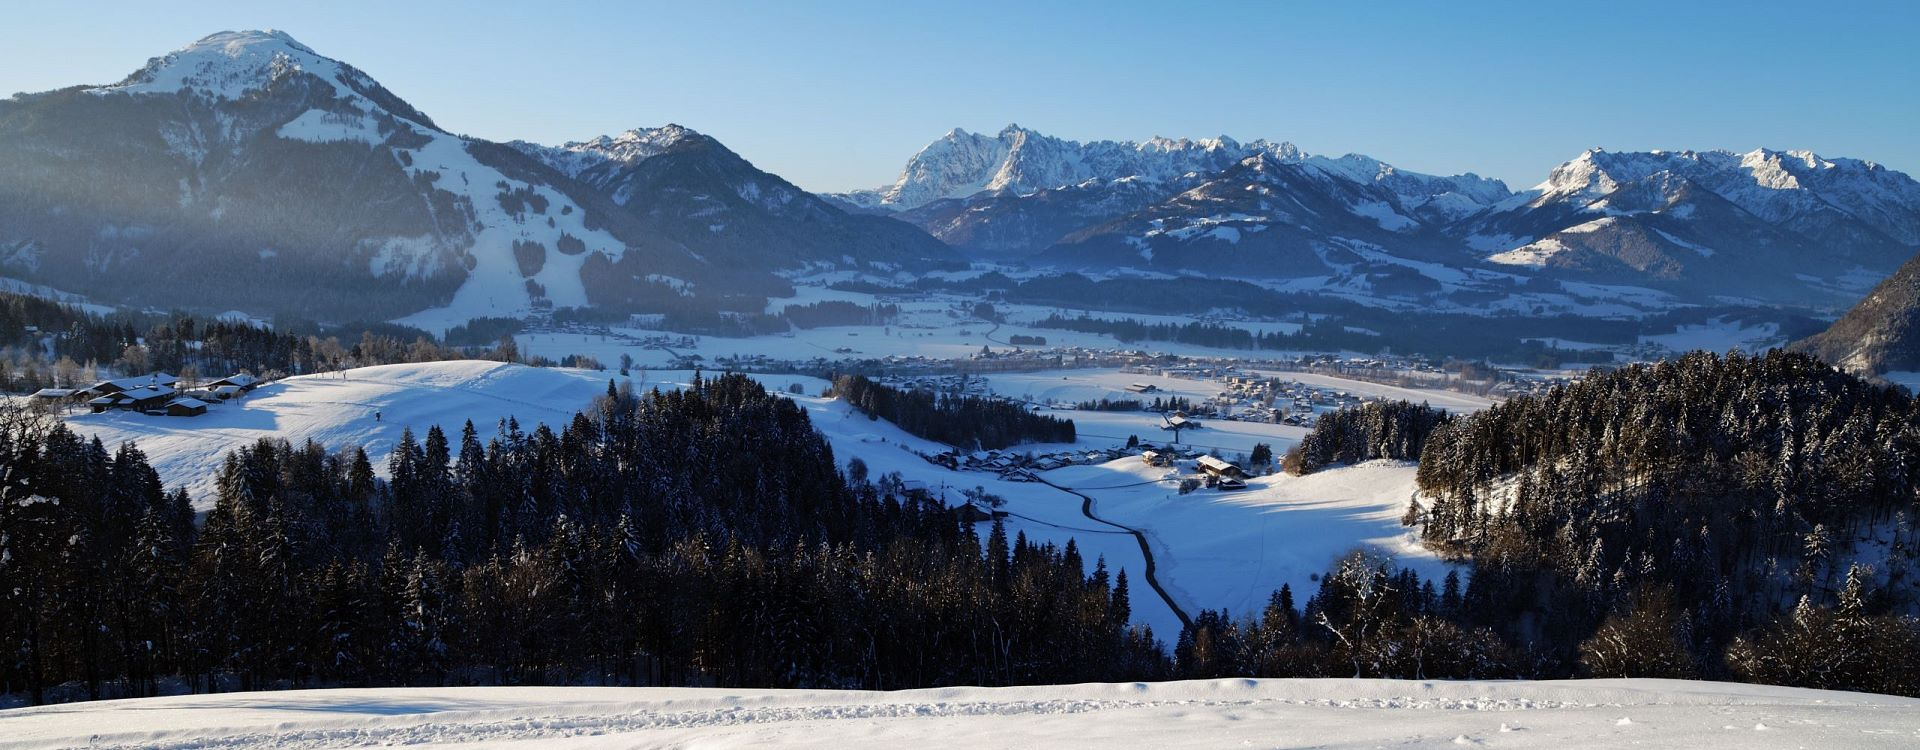 A holiday in KaiserwinklTyrol